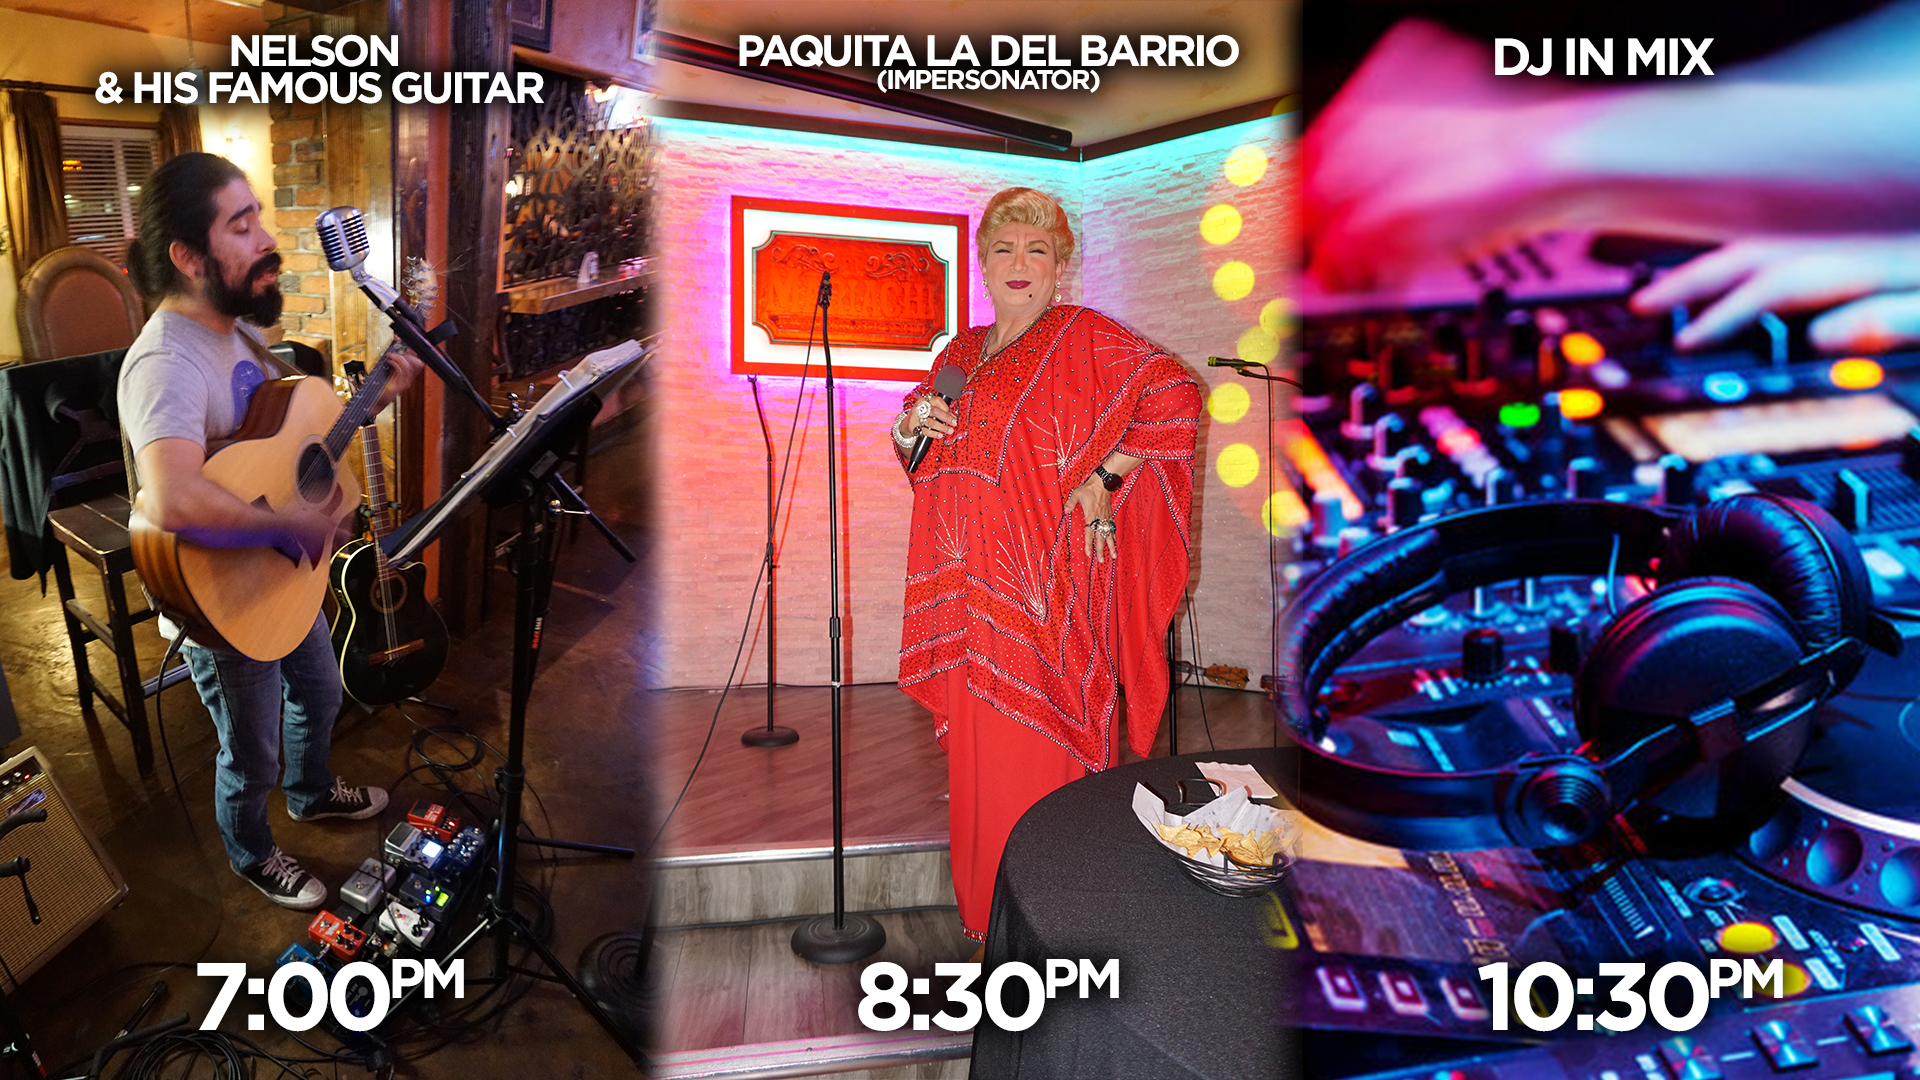 FRIDAY NIGHTS - Starting at 7pm with Nelson & his famous guitar, followed by Paquita la del Barrio show at 8:30pm, & finishing of the night DJ Tropical in the mix every Friday night.!